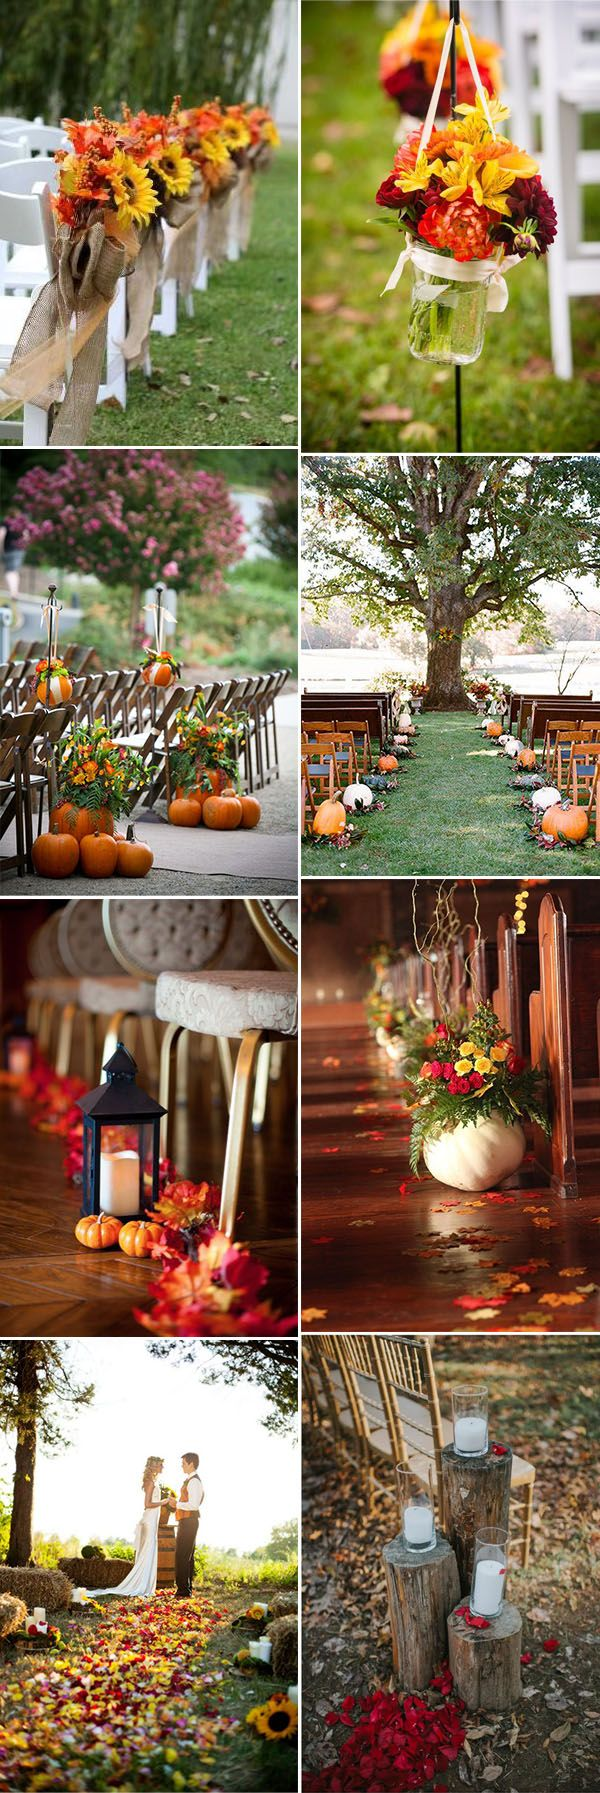 Wedding decorations unique october 2018   Genius Fall Wedding Ideas Youull Love to Try  Aisle